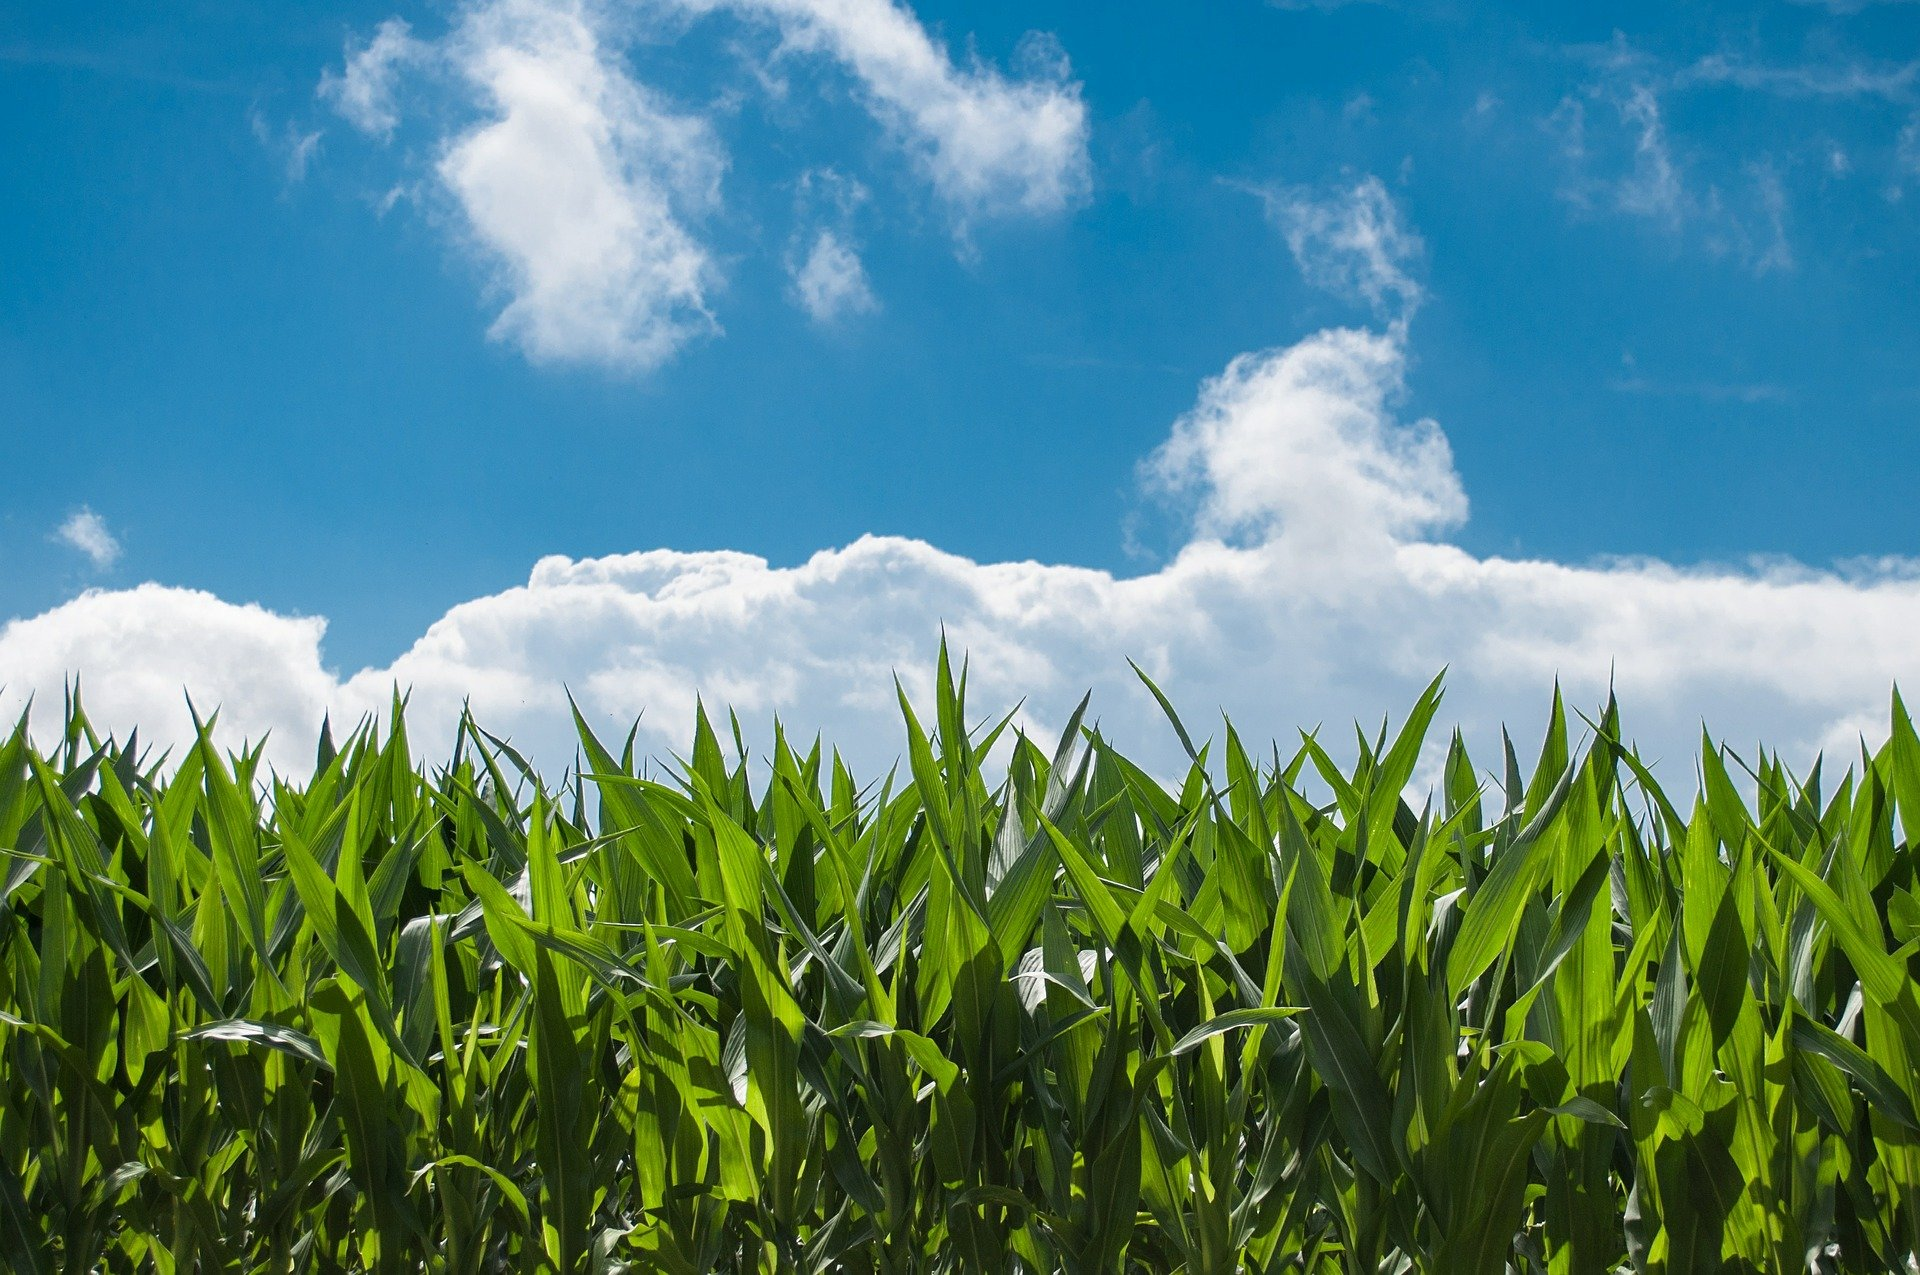 Changing temperatures are helping corn production in US — for now